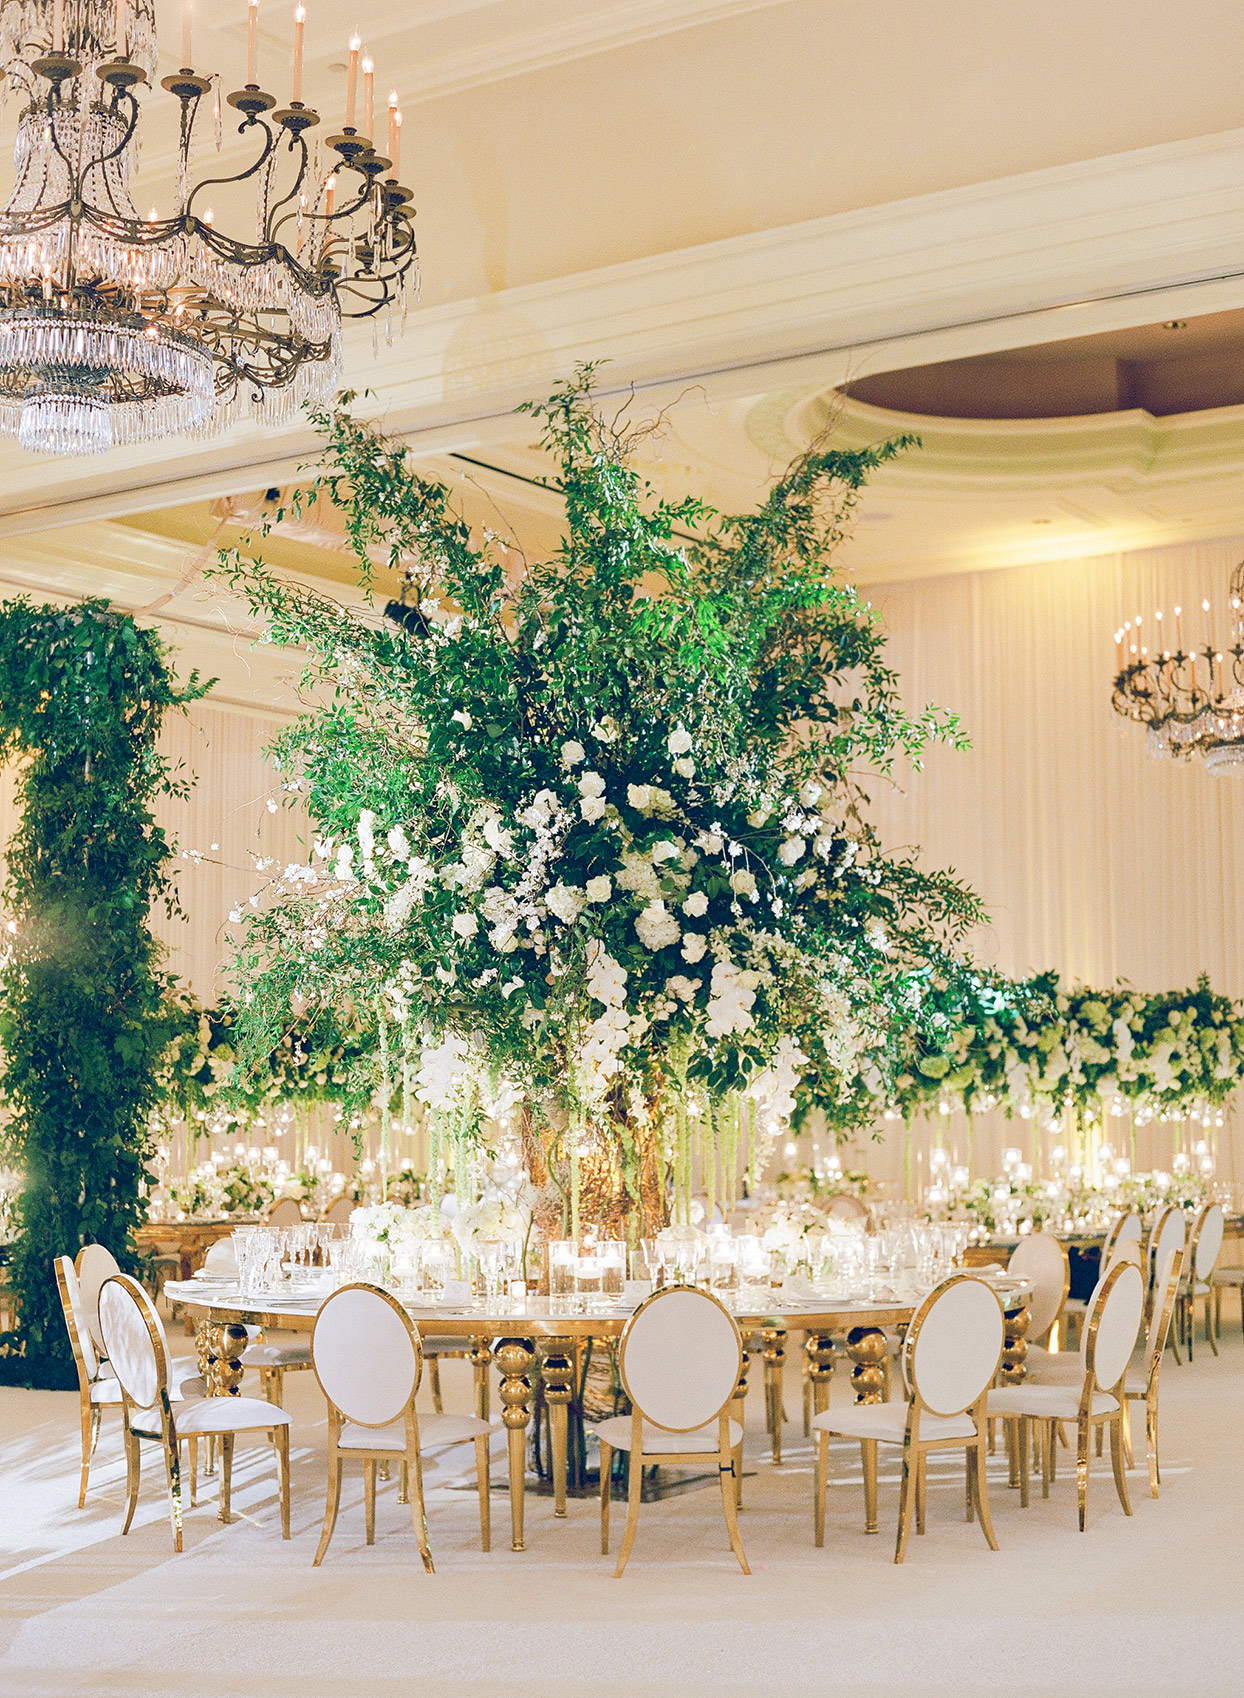 brittany brian wedding reception round table with large floral centerpiece in the middle